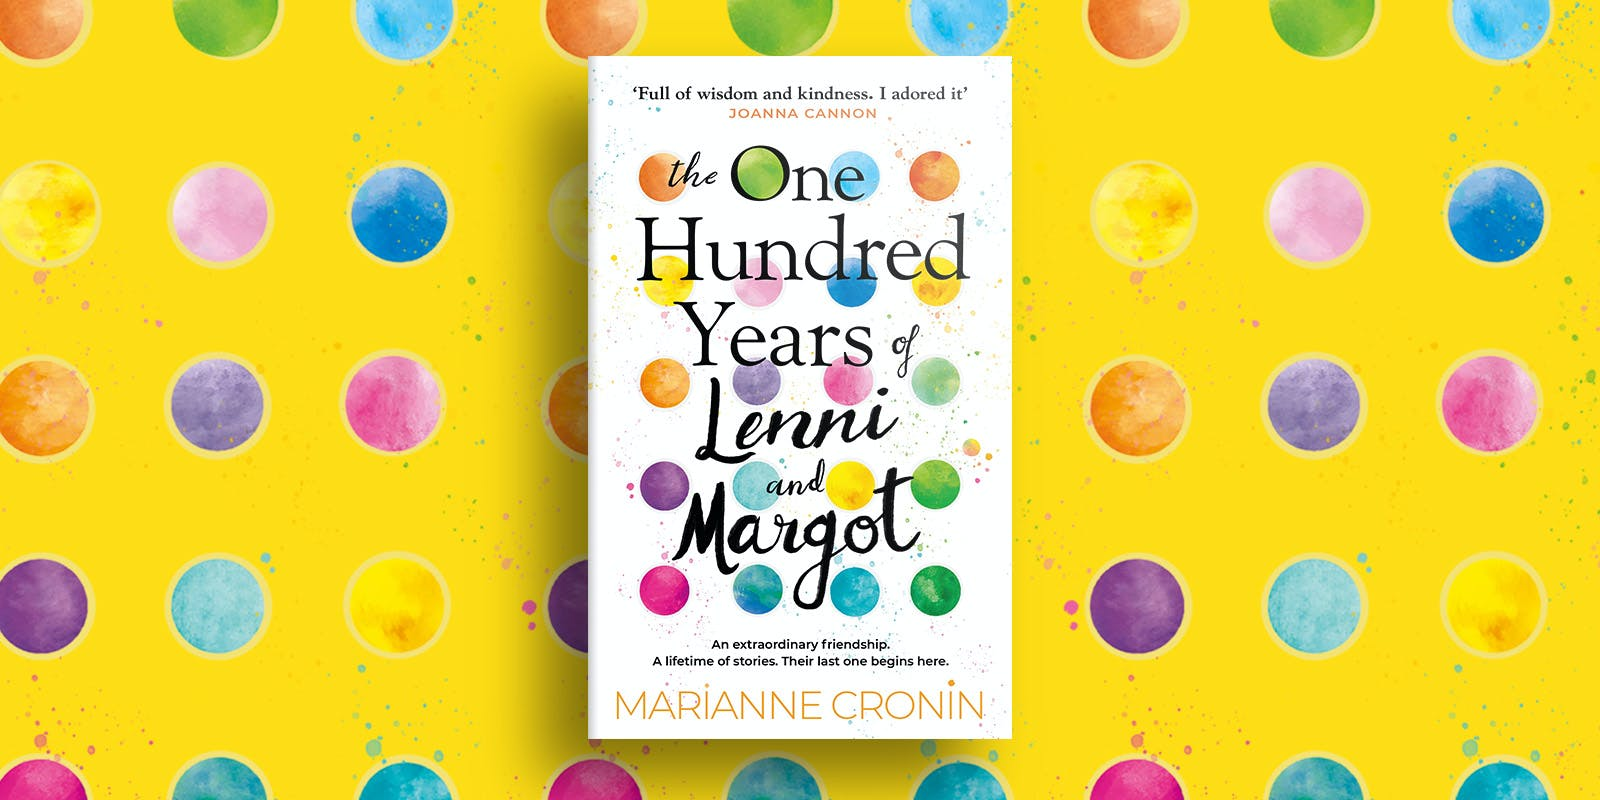 The One Hundred Years of Lenni and Margot book club notes